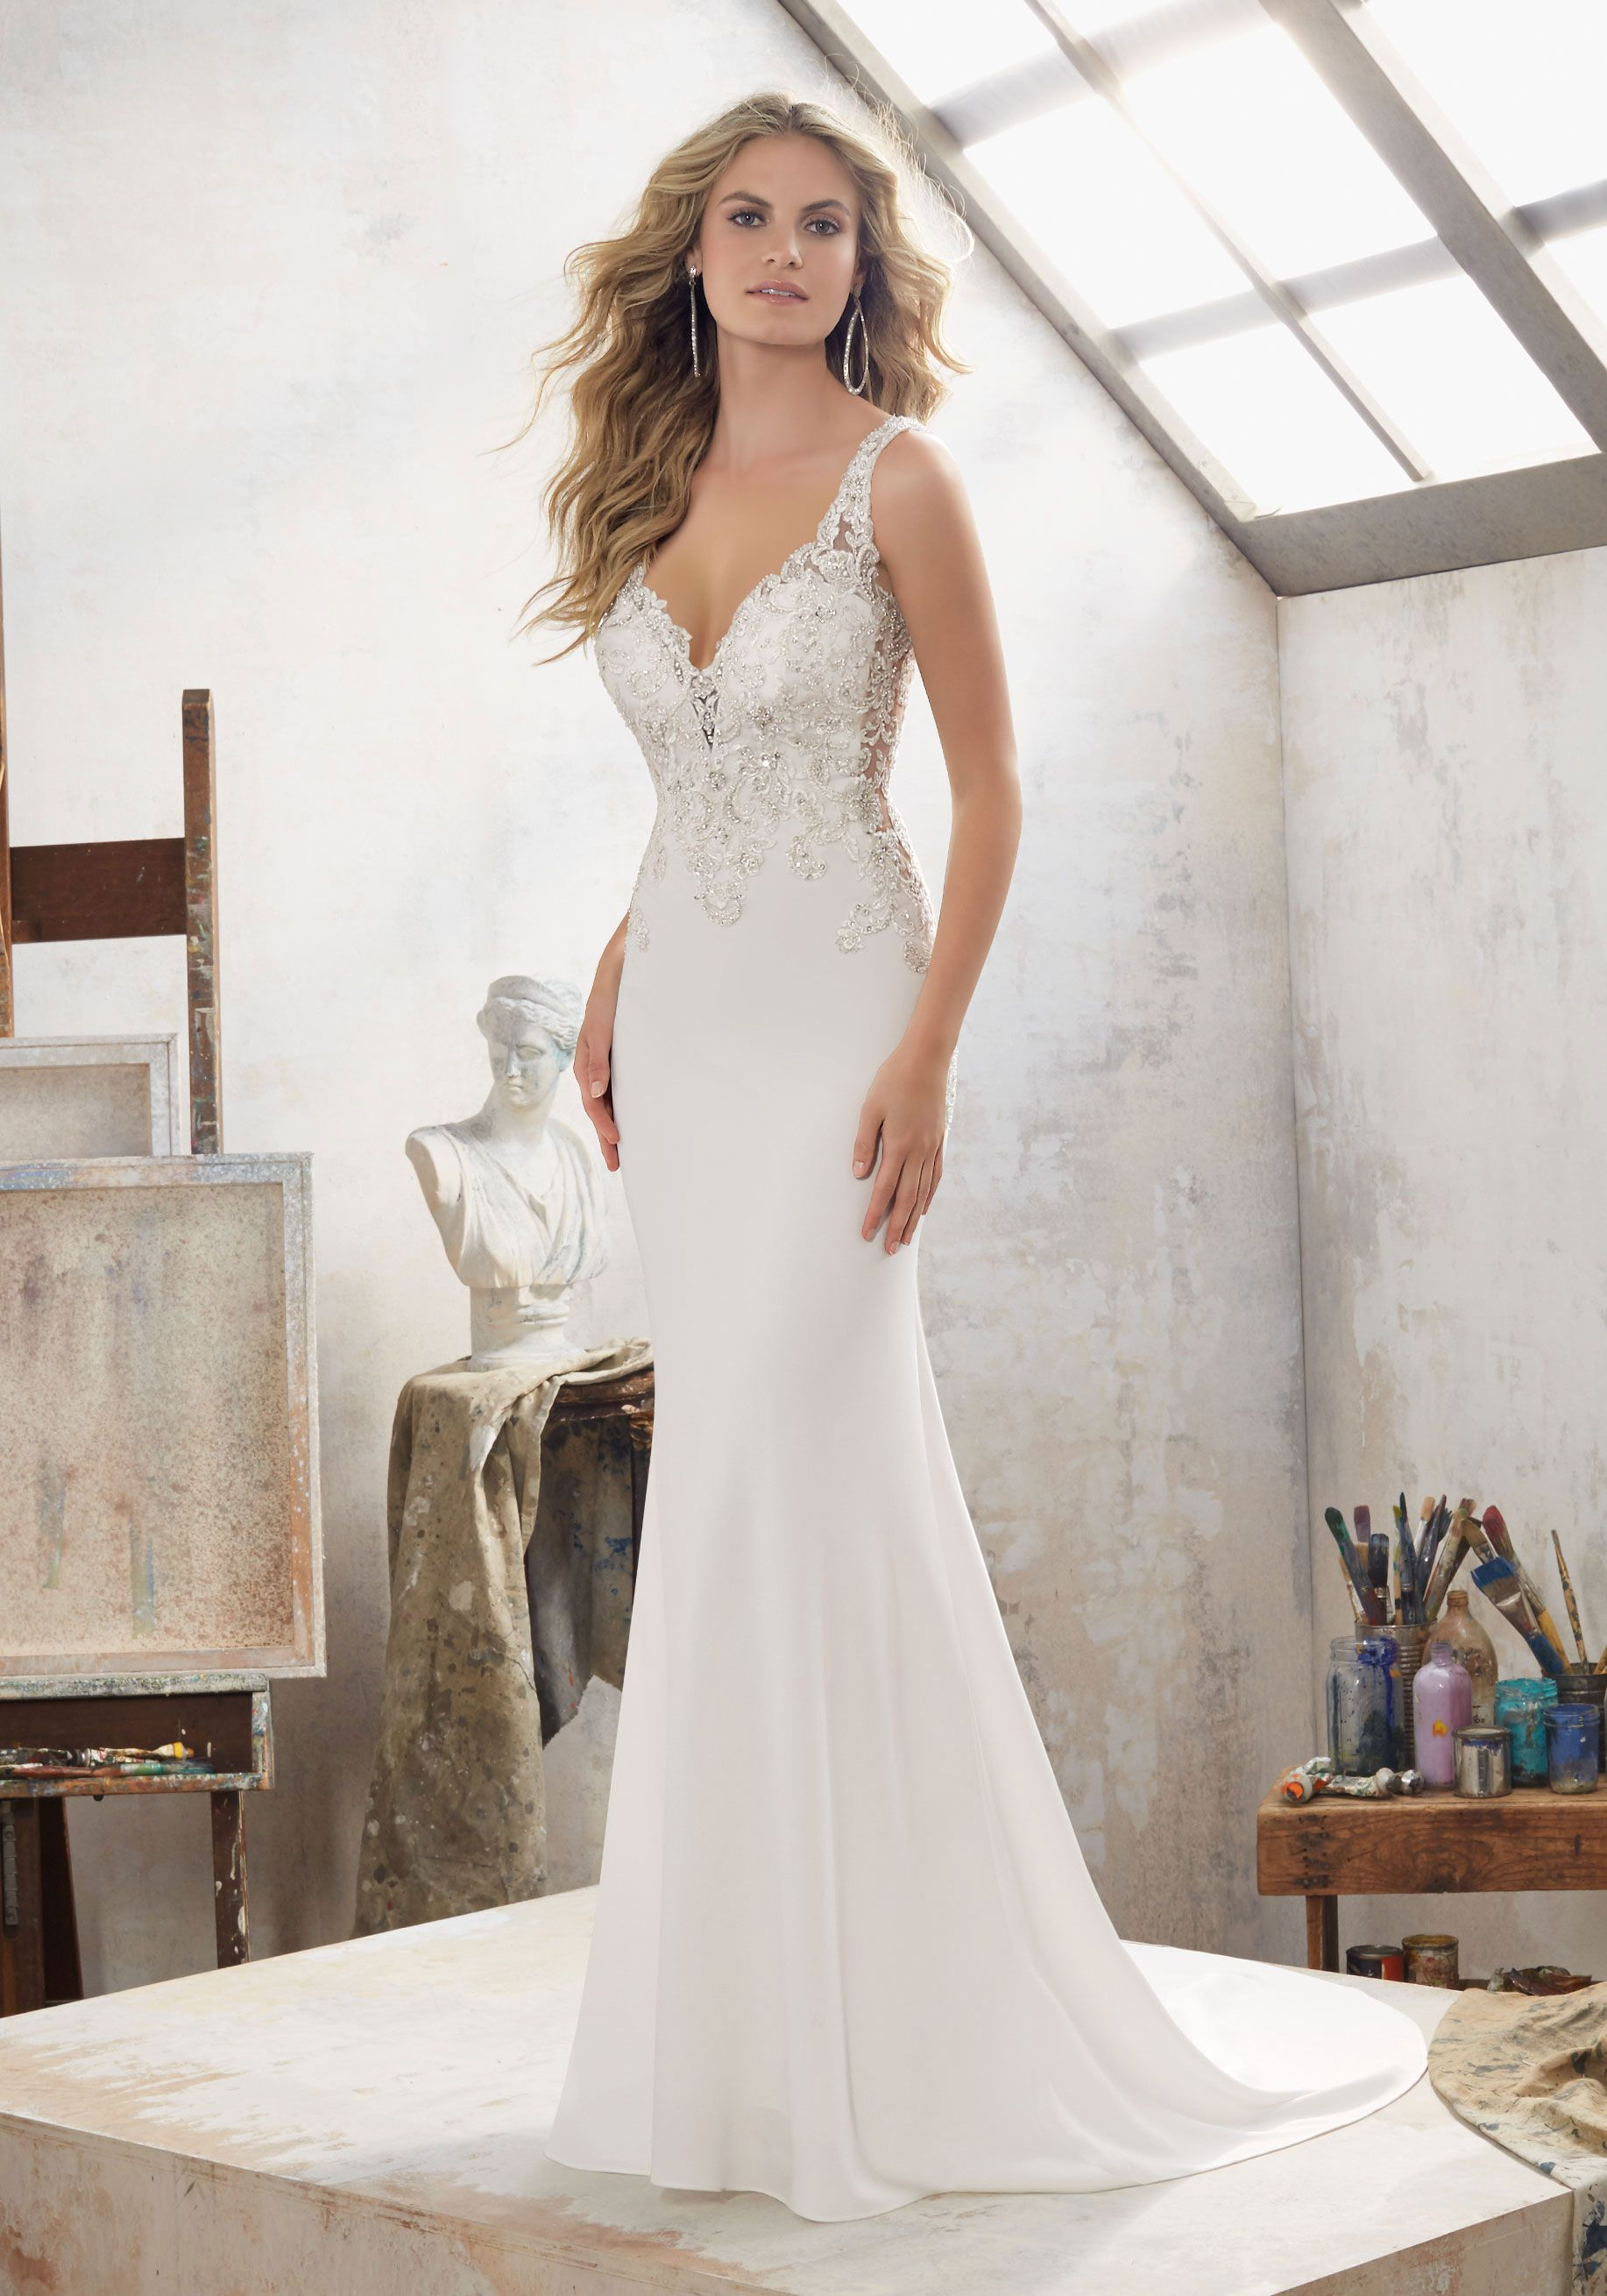 8113 Wedding Dresses And Bridal Gowns By Morilee Stunning Sheath Dress With Crystals On The Bodice Open Back Illusion Cutouts At